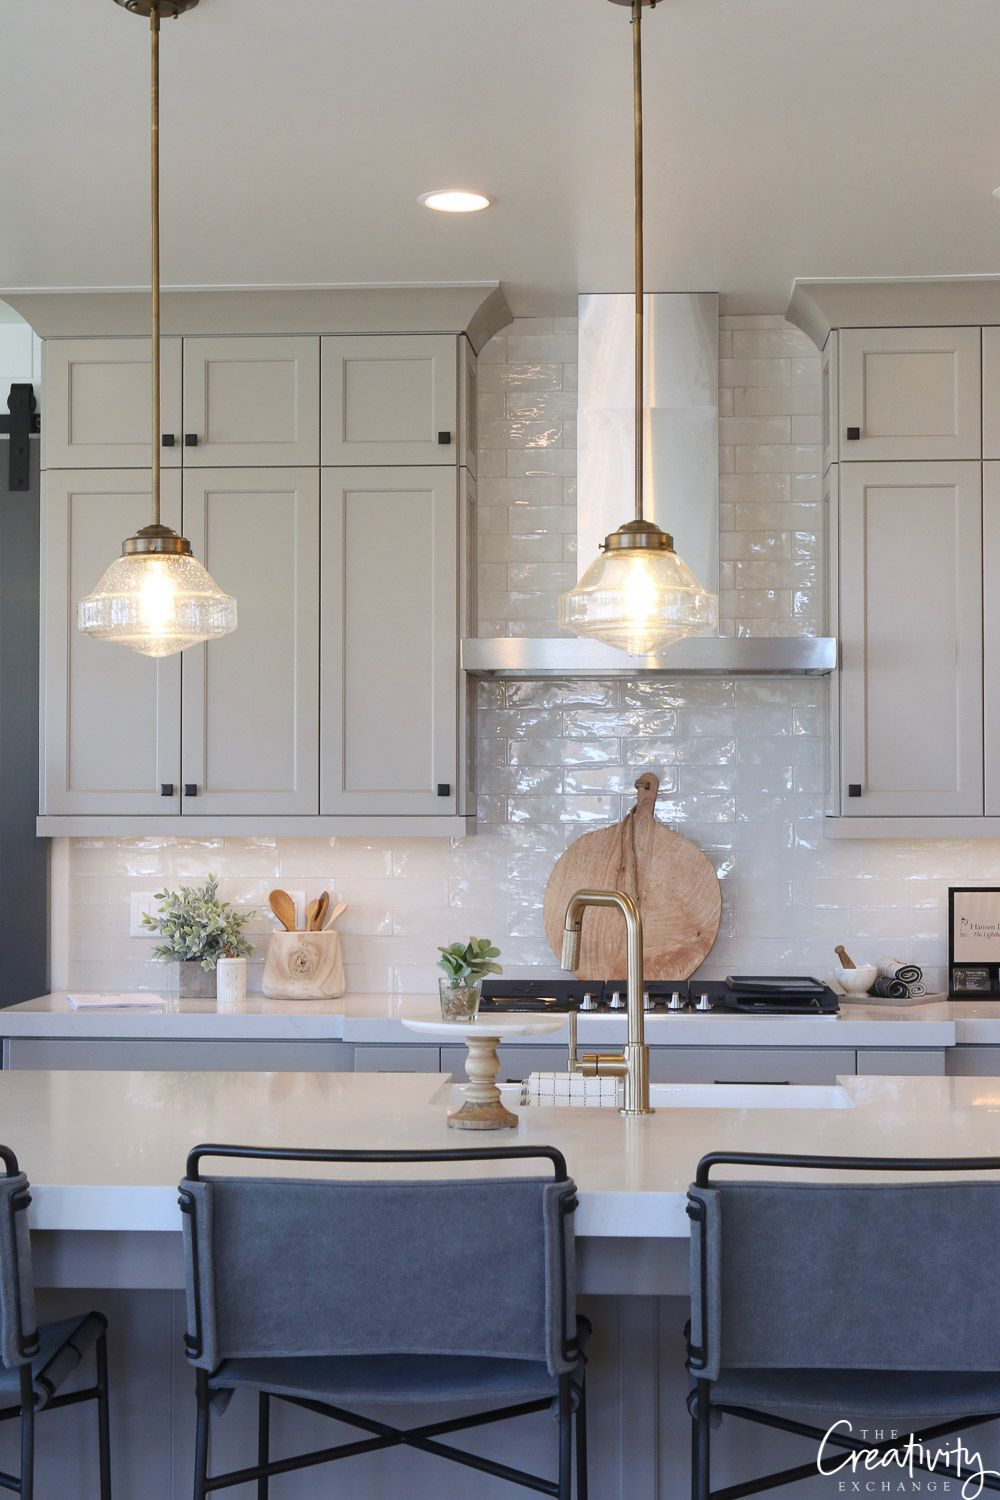 2019 paint color trends and forecasts kitchen trends on benjamin moore paints colors id=63371